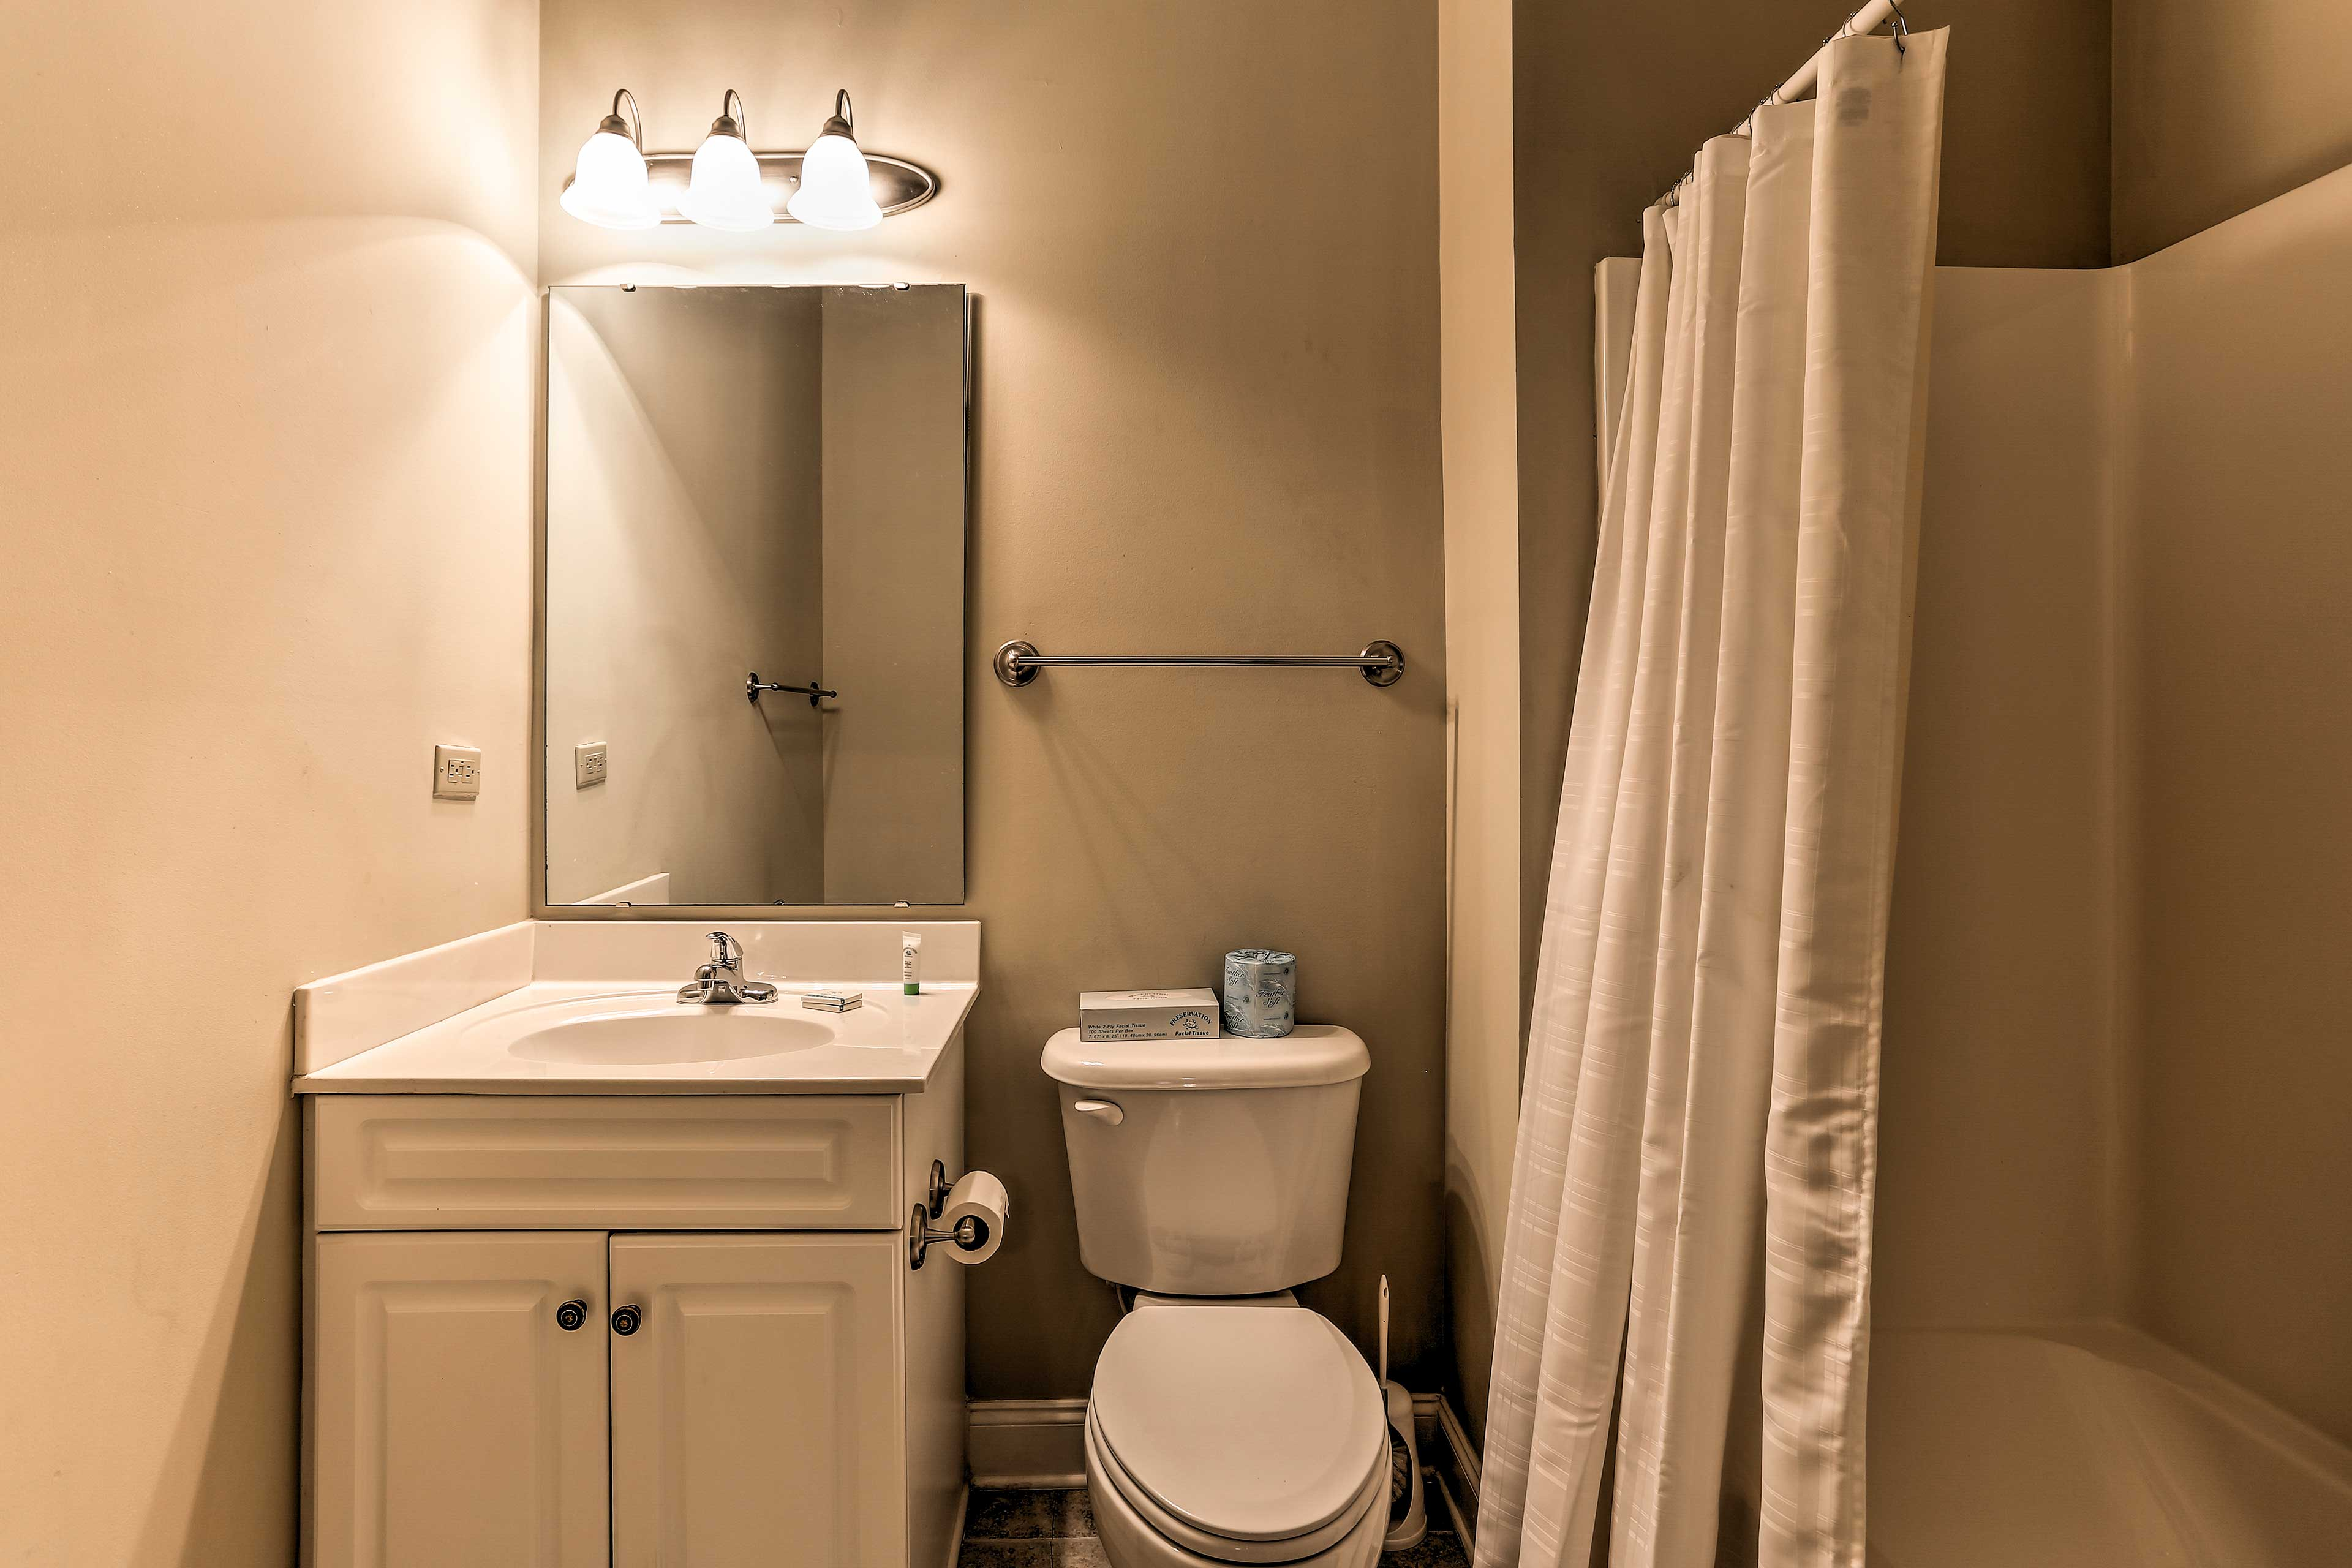 This first full includes provides a shower/tub combo.